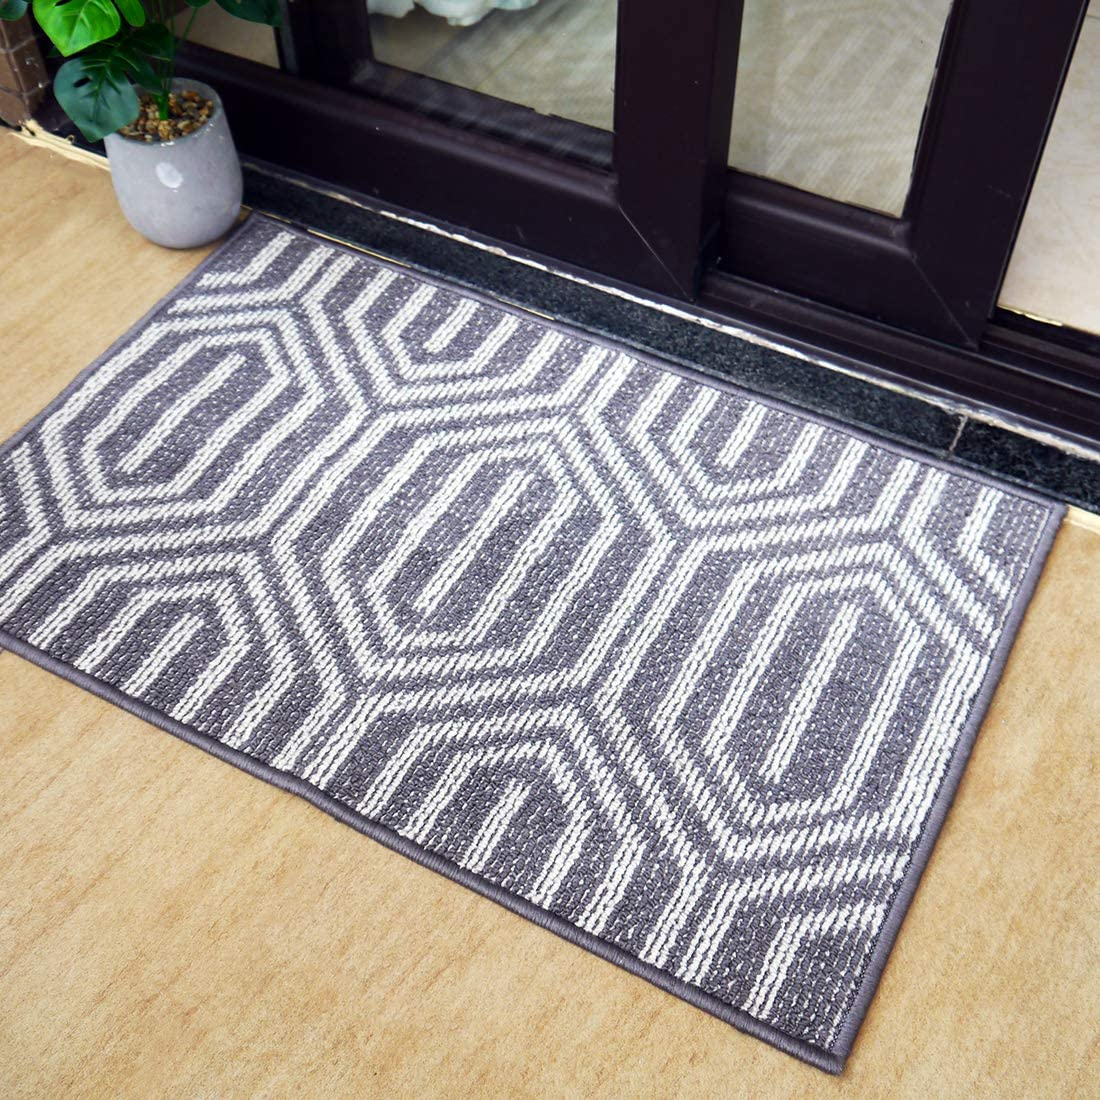 "Indoor Doormat Entrance,Outdoor Mat for Front Door, Waterproof and No-Slip Inside Floor Rubber Carpets Washable Area Rug for Home, Entry, Bathroom, Living Room, 20"" X 32""Grey-Time Cloister"